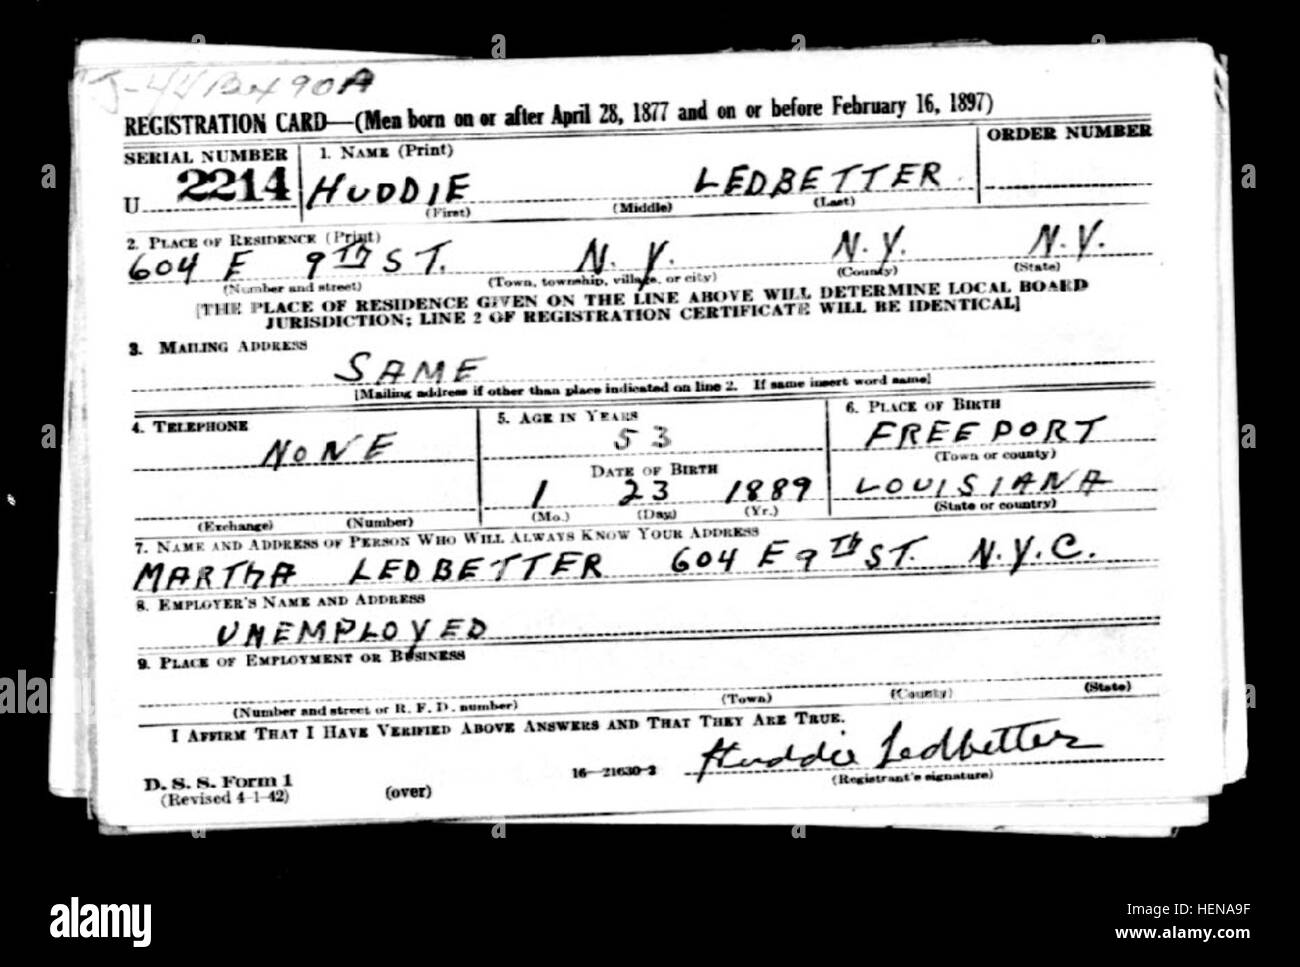 Lead Belly Draft Registration Card Ca 1942 Stock Photo Alamy